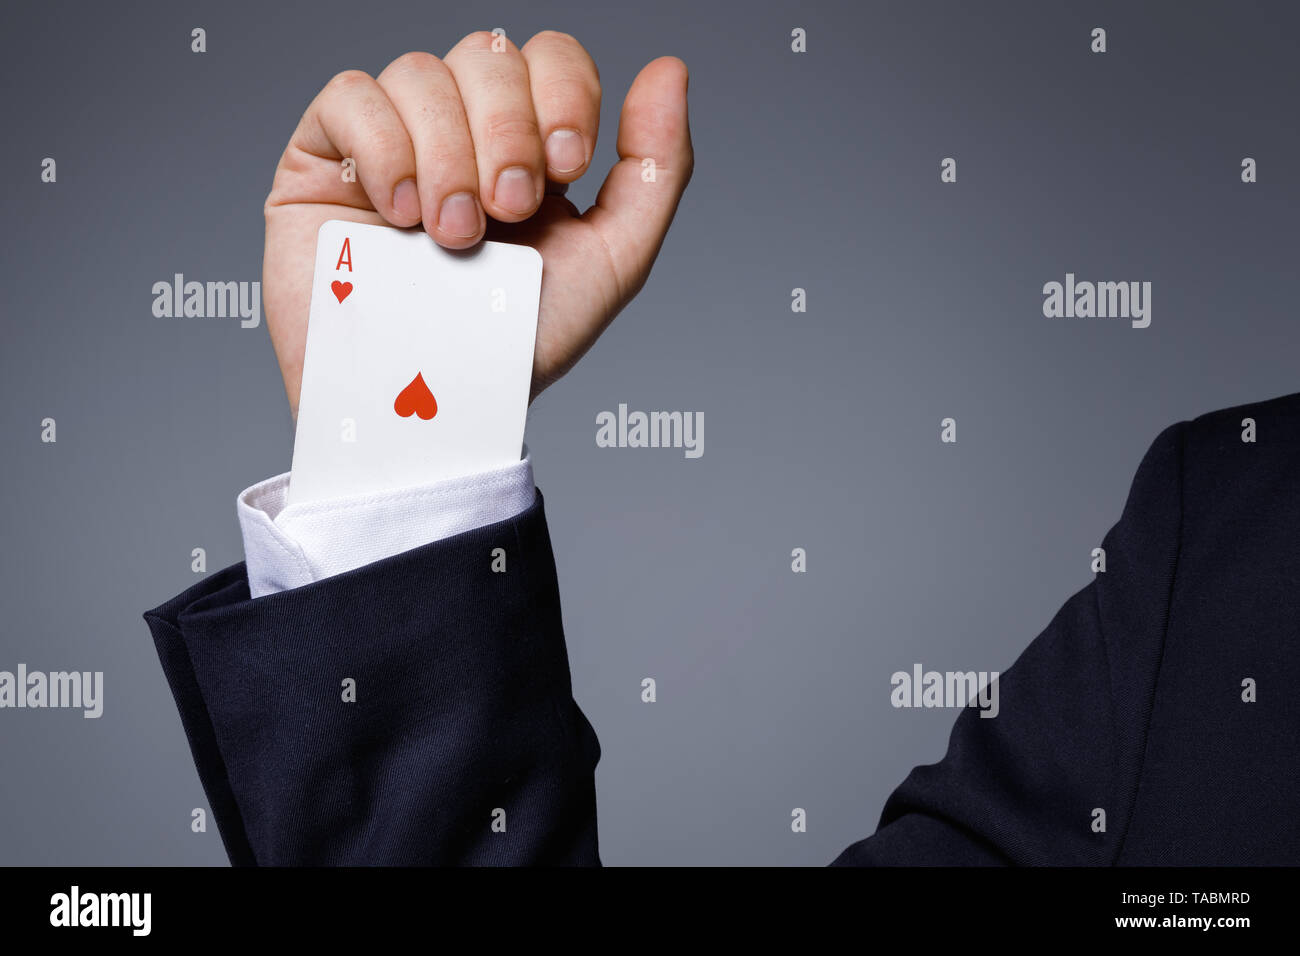 Gambling addiction concept  Man is hiding an Ace card in the